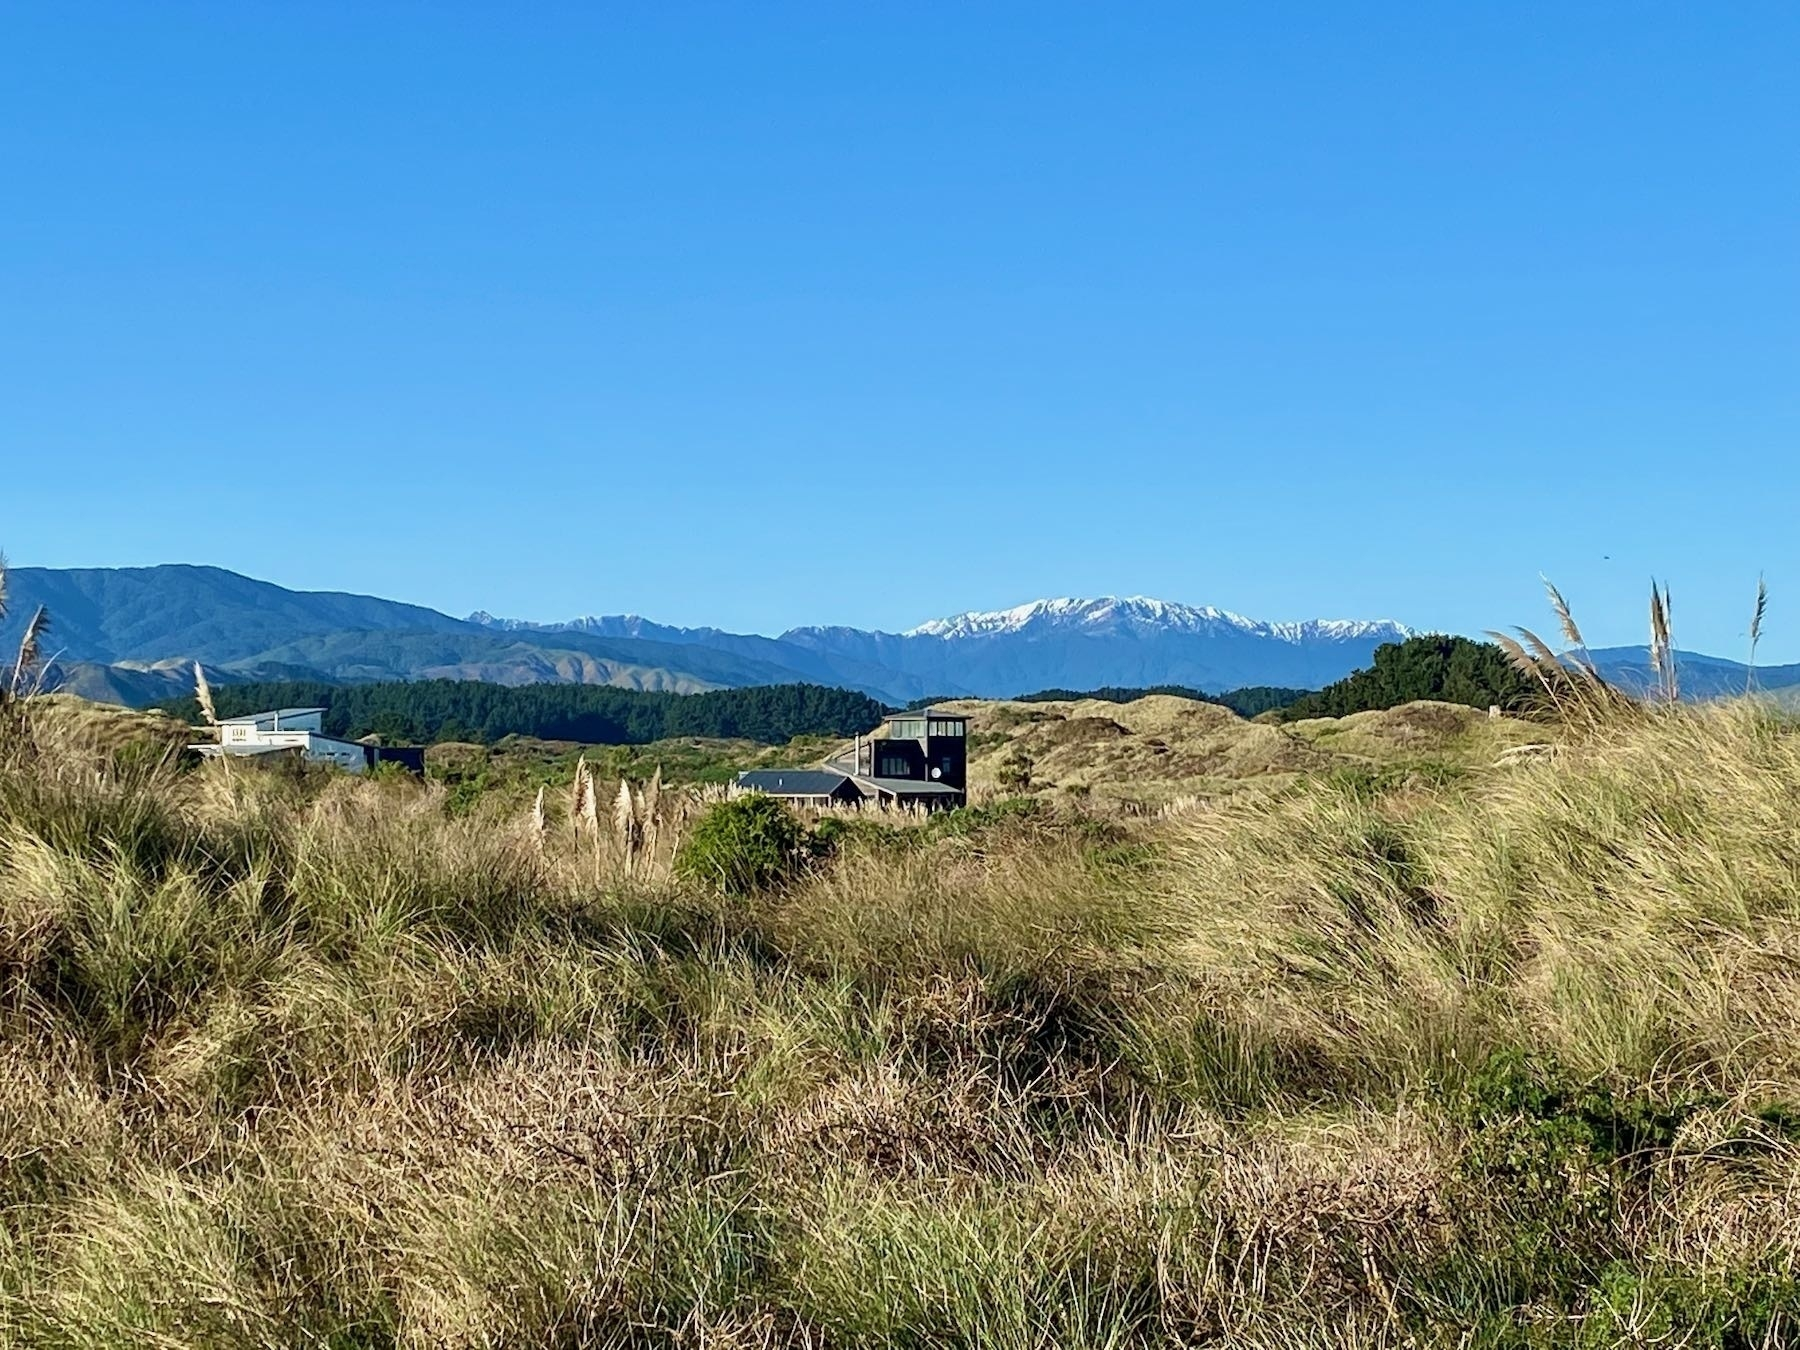 A view across dunes and paddocks to the snowy peak of a mountain.